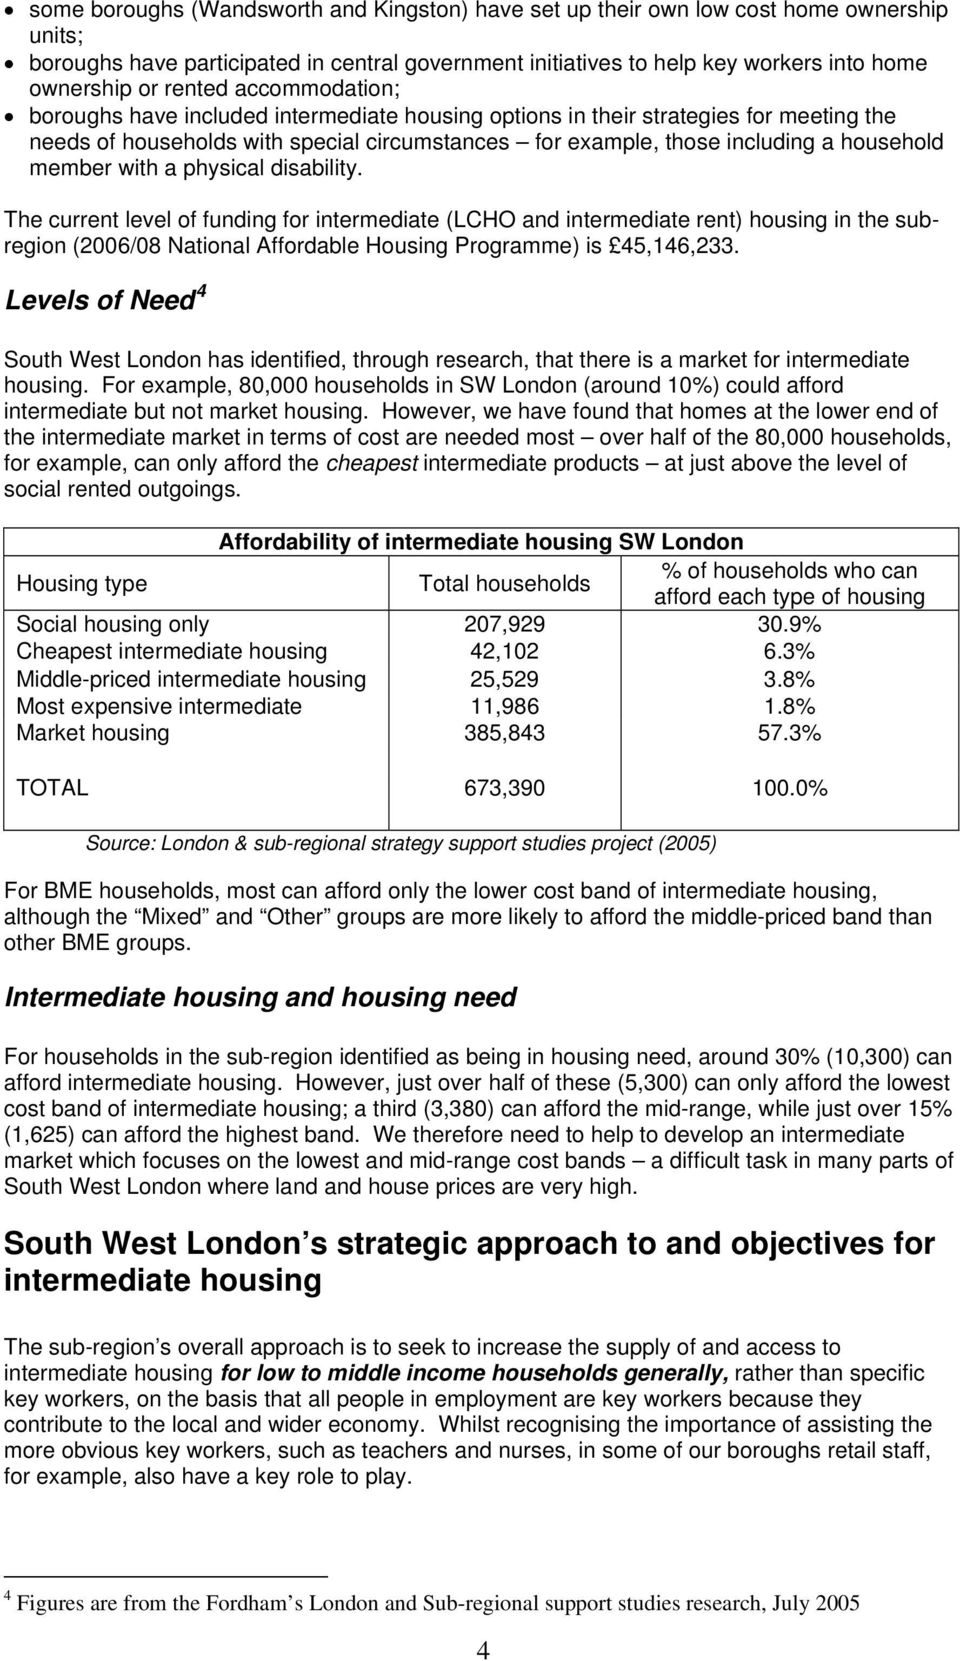 member with a physical disability. The current level of funding for intermediate (LCHO and intermediate rent) housing in the subregion (2006/08 National Affordable Housing Programme) is 45,146,233.